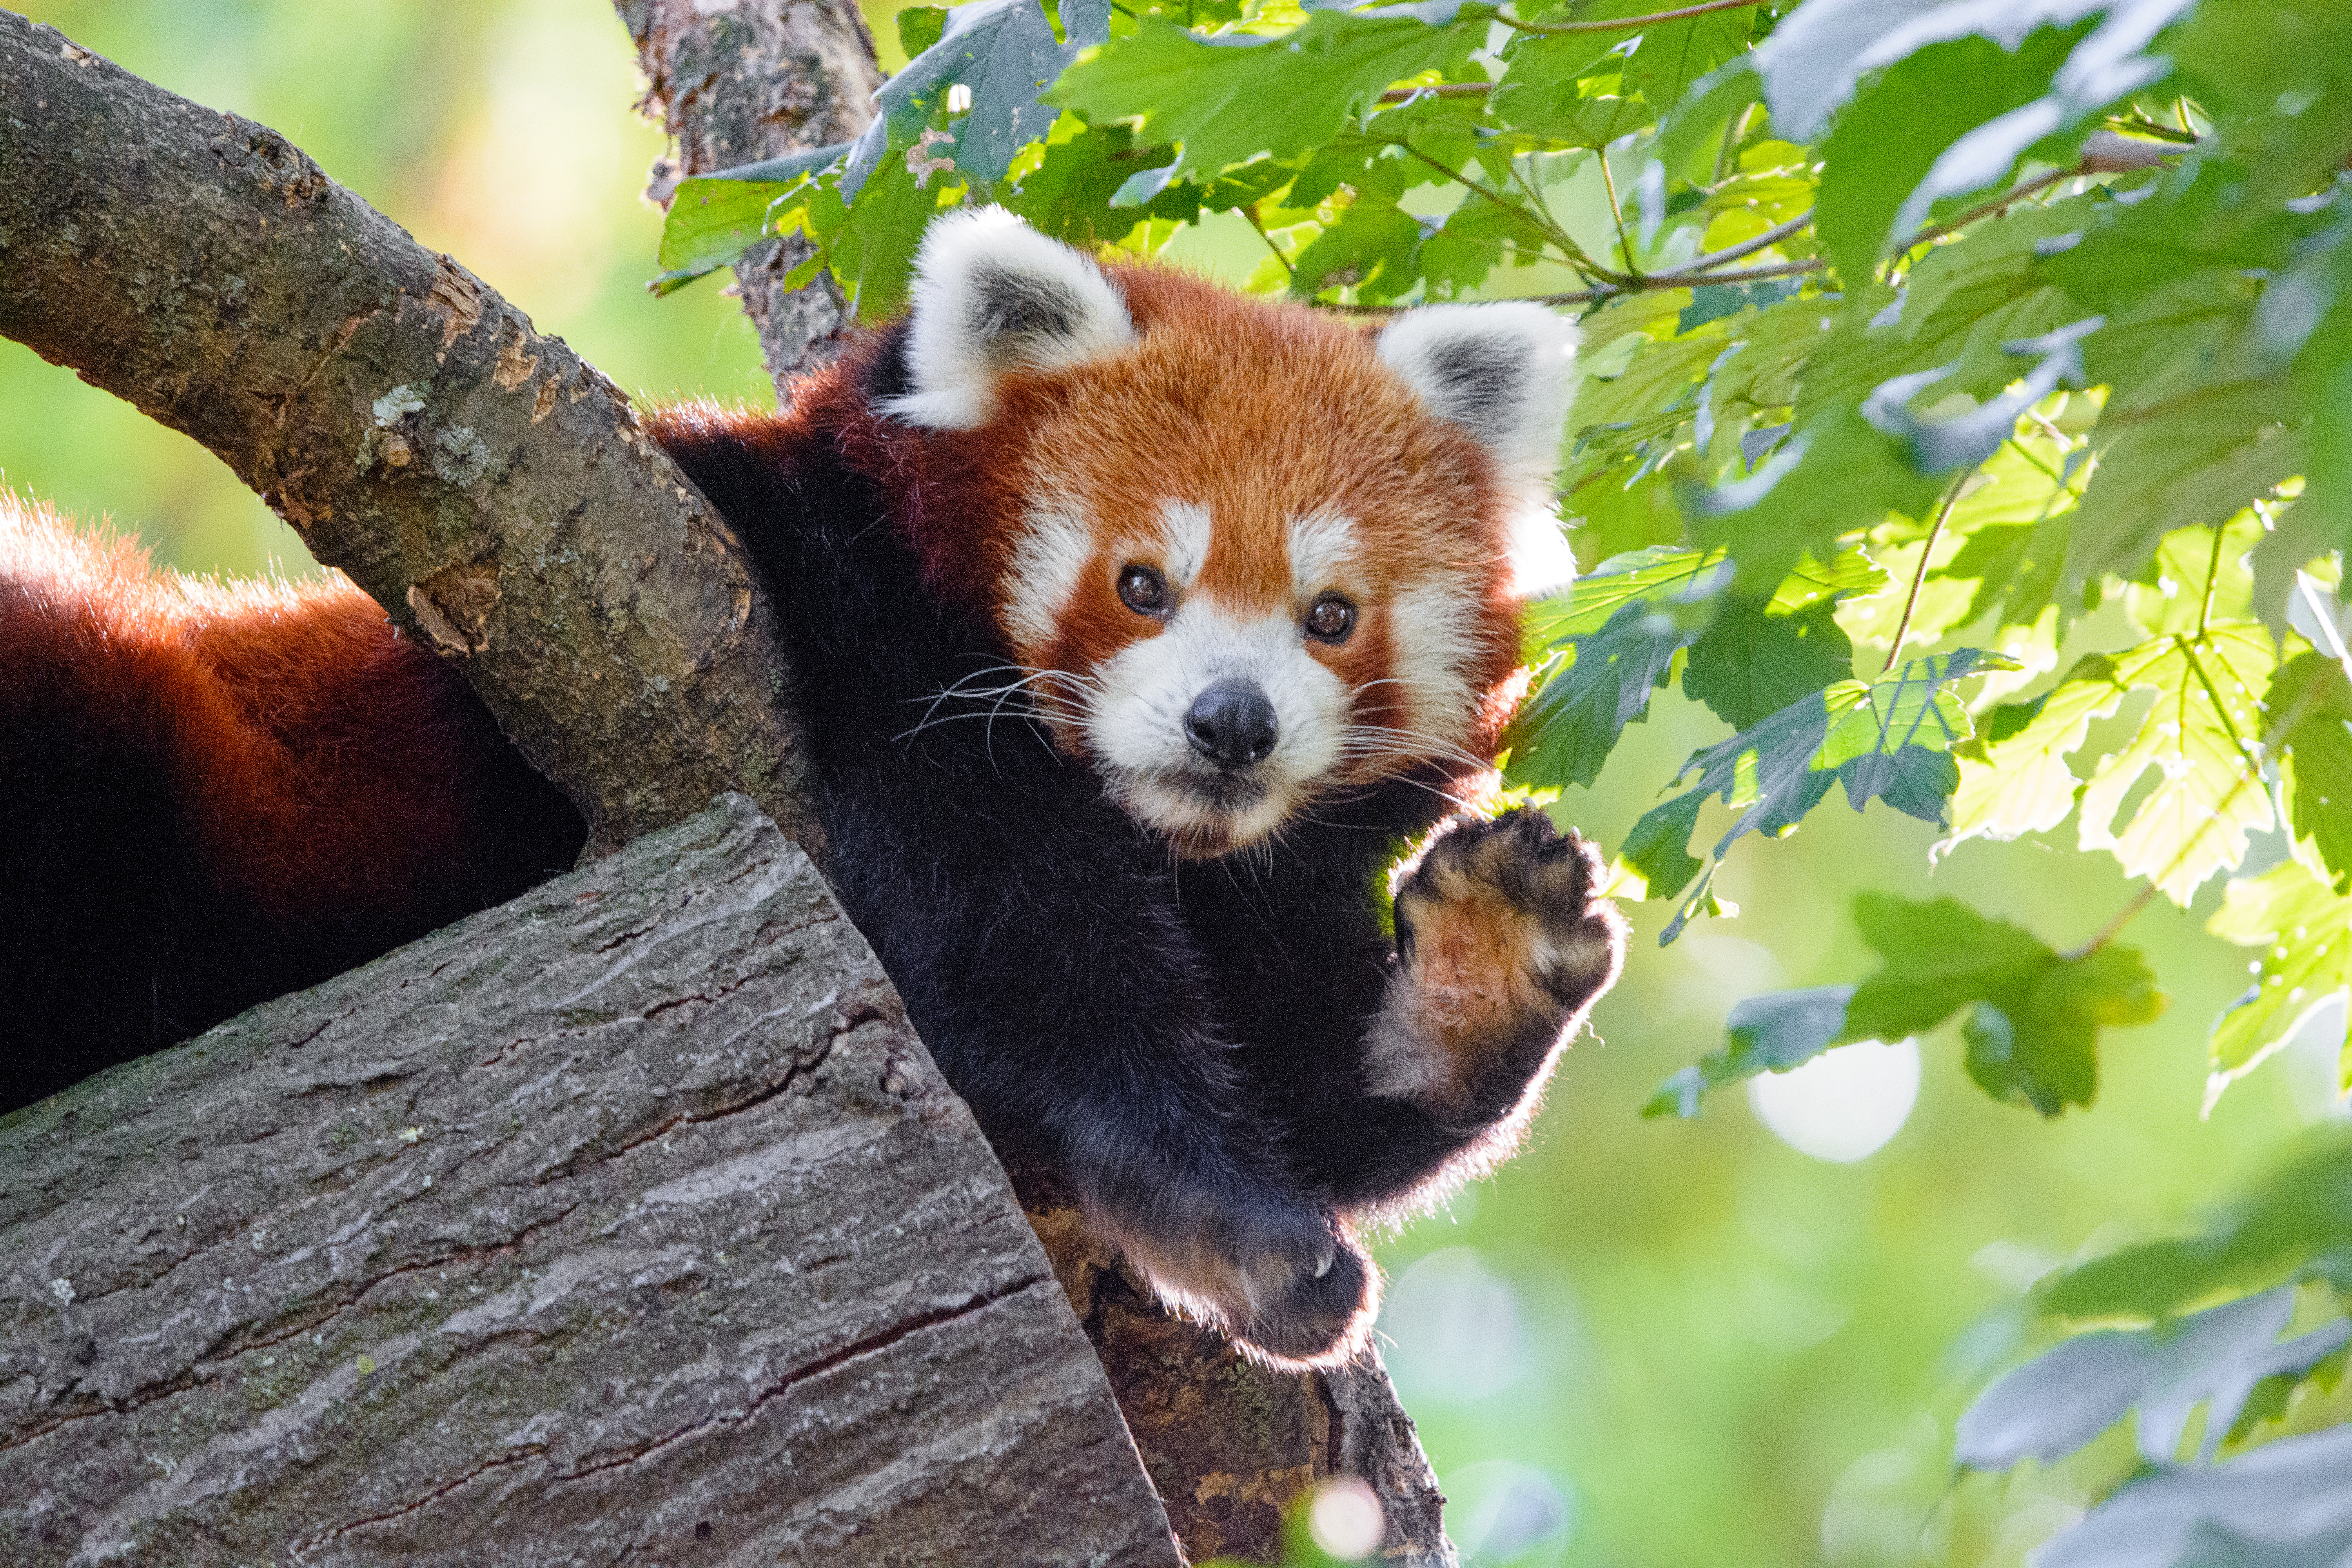 156452 download wallpaper Animals, Red Panda, Animal, Paw, Funny screensavers and pictures for free